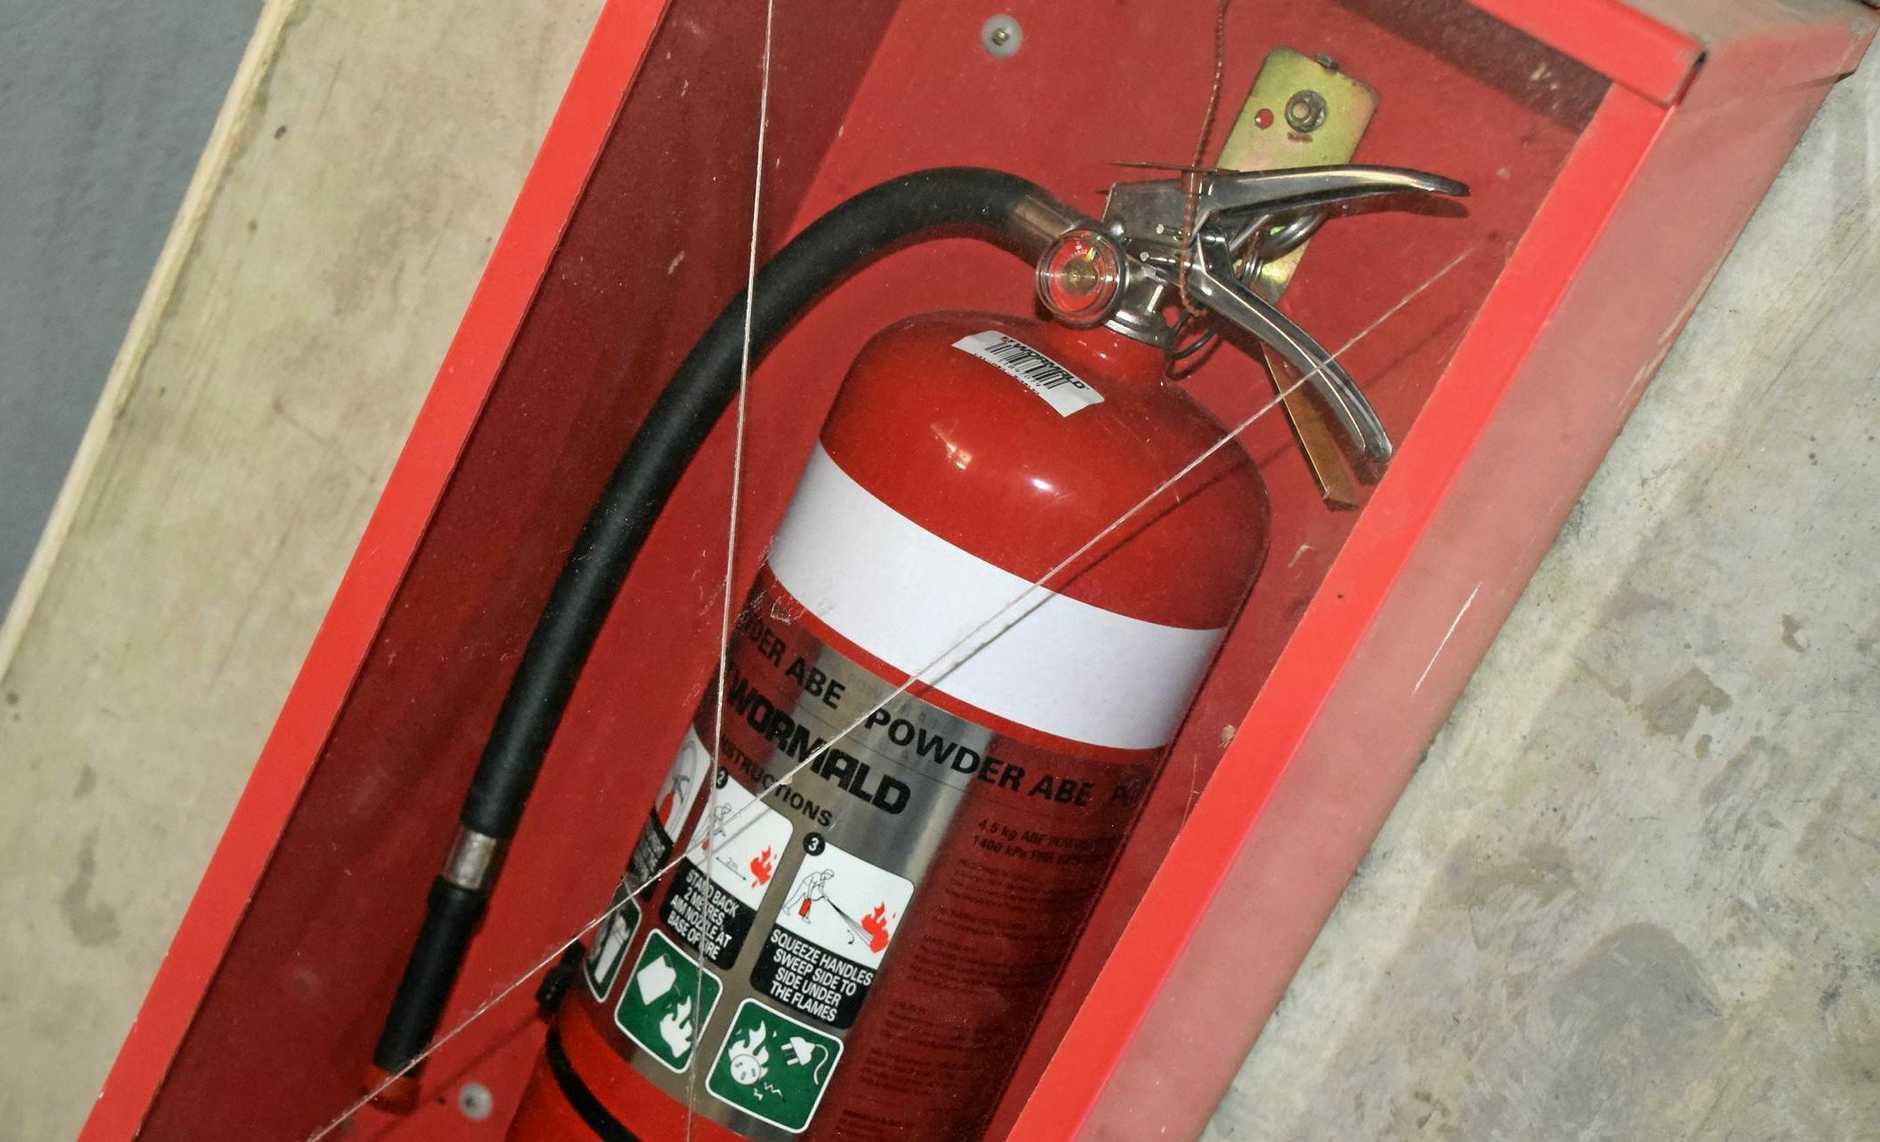 FILE PHOTO: A fire extinguisher with its labels removed was found nearby (not the fire extinguisher in question).